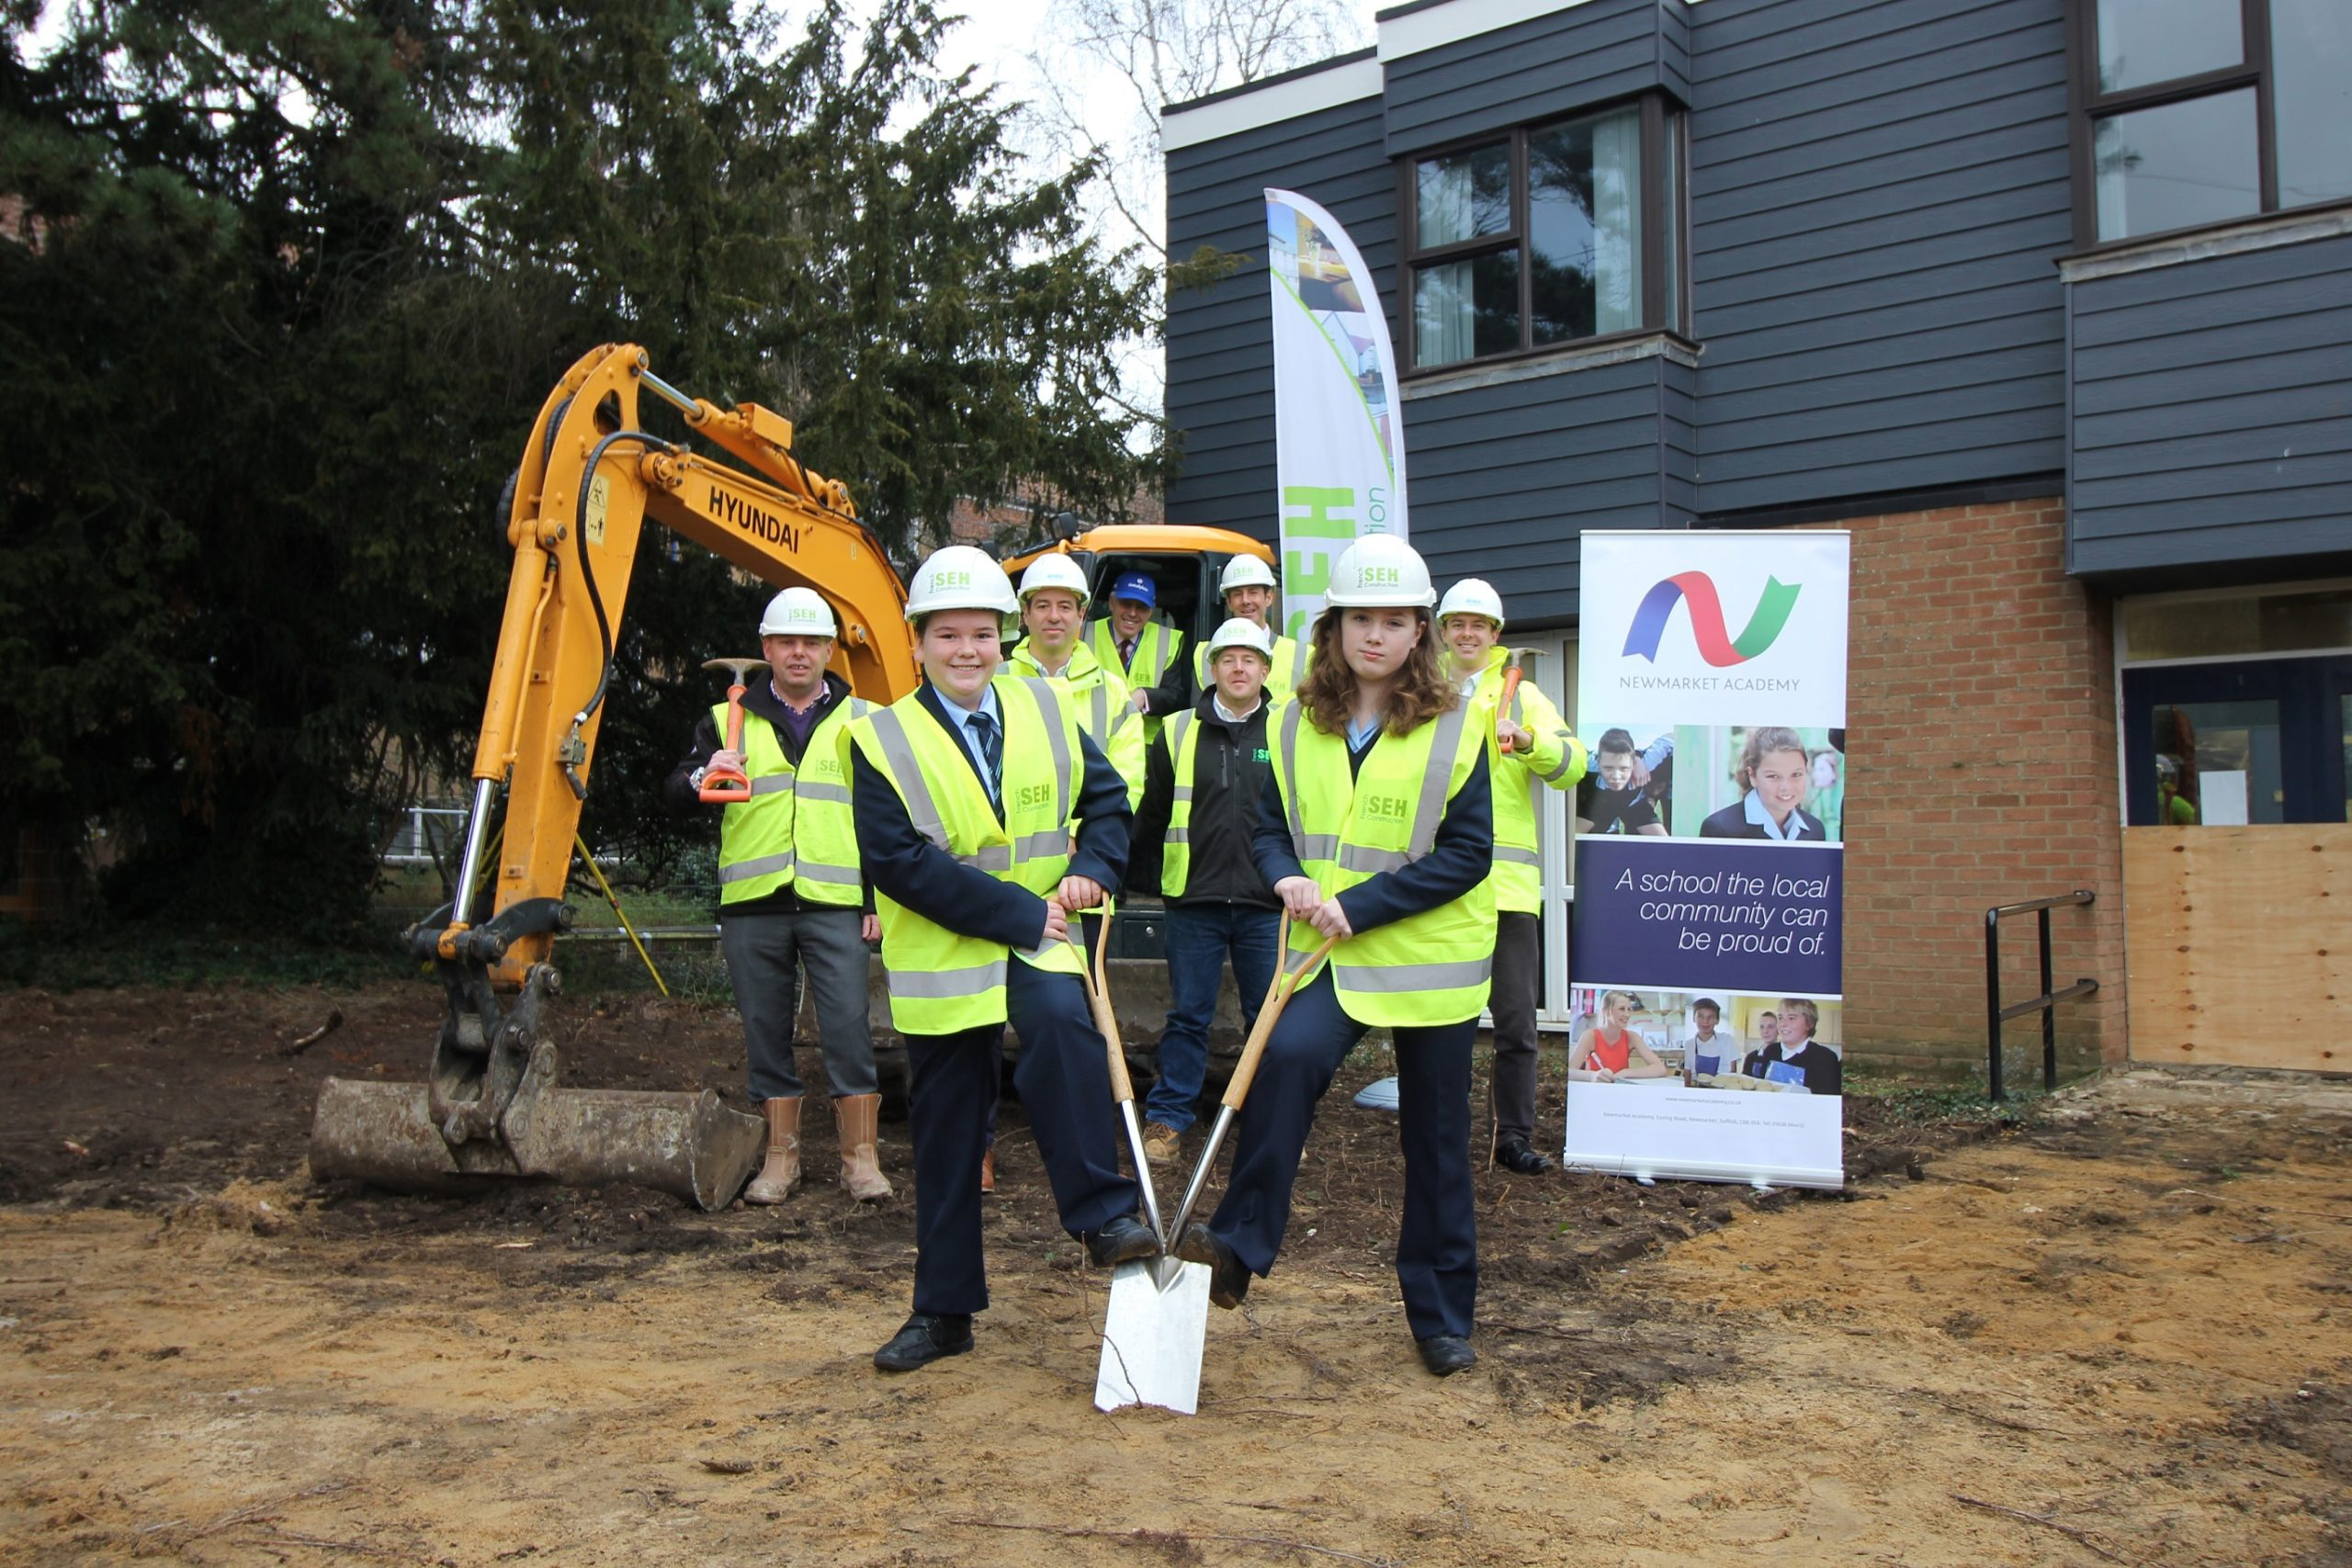 Work on new Library begins at Newmarket Academy